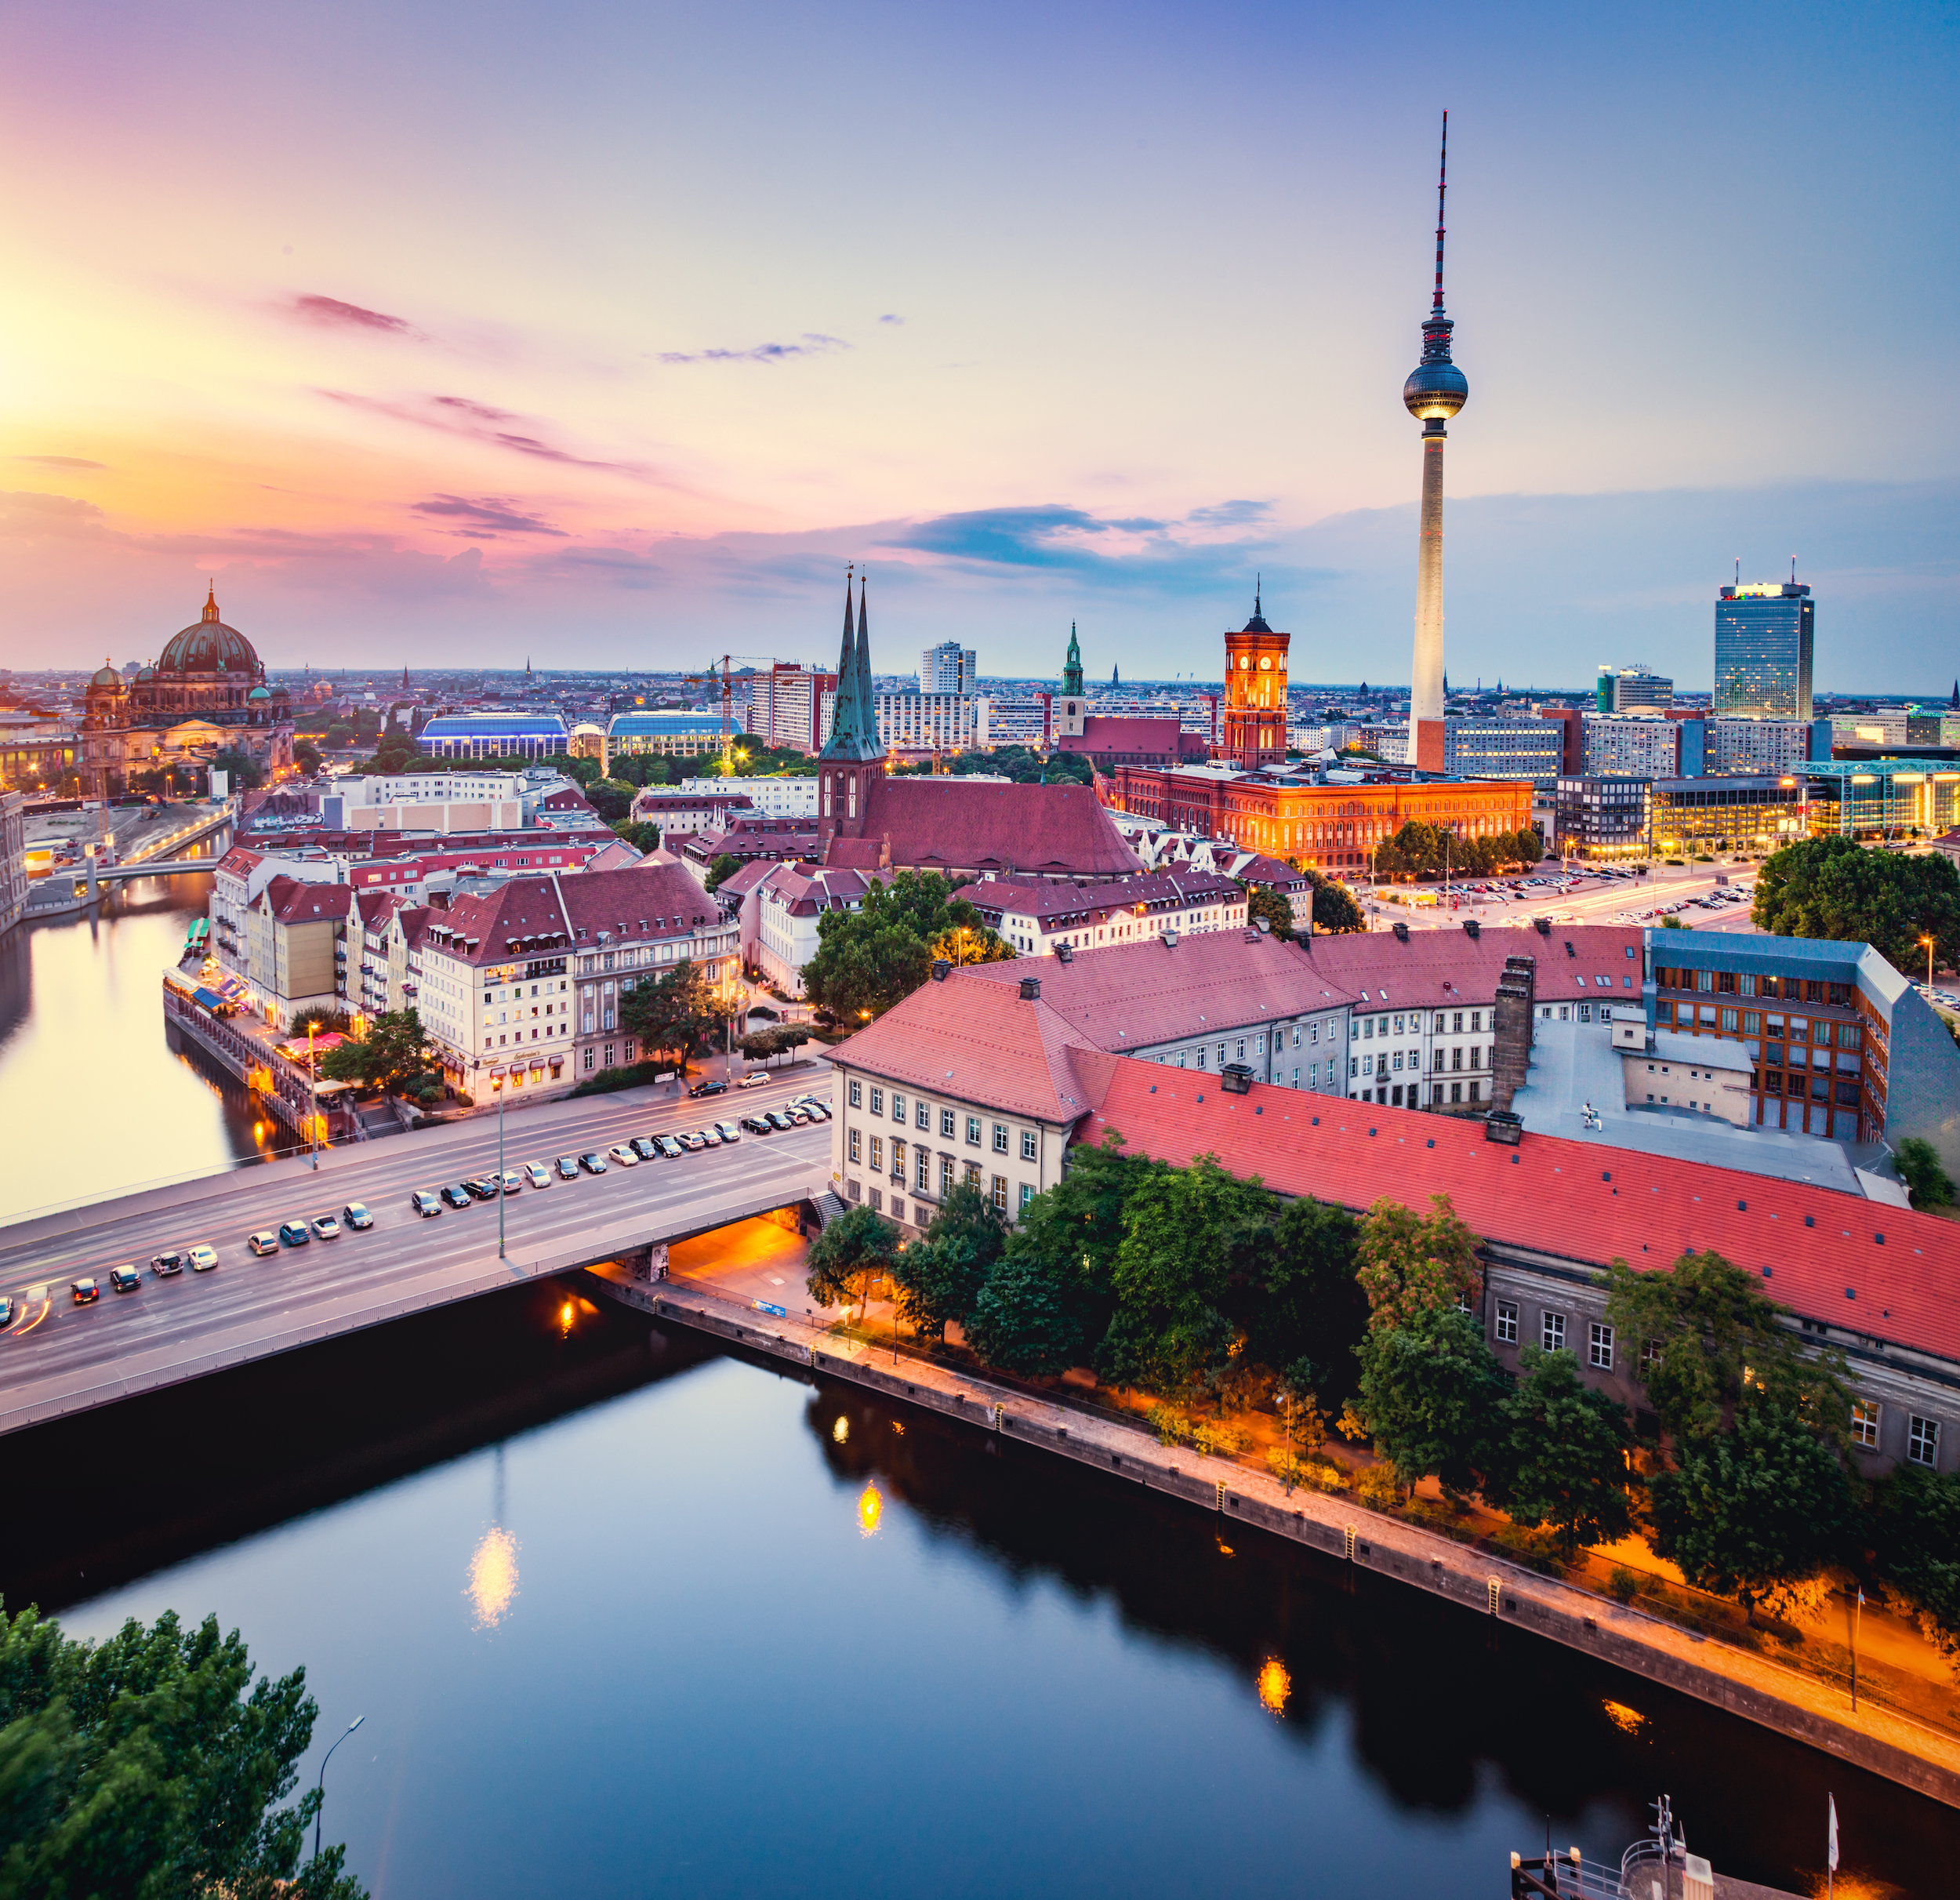 Germany welcomes vaccinated travellers from Qatar without quarantine